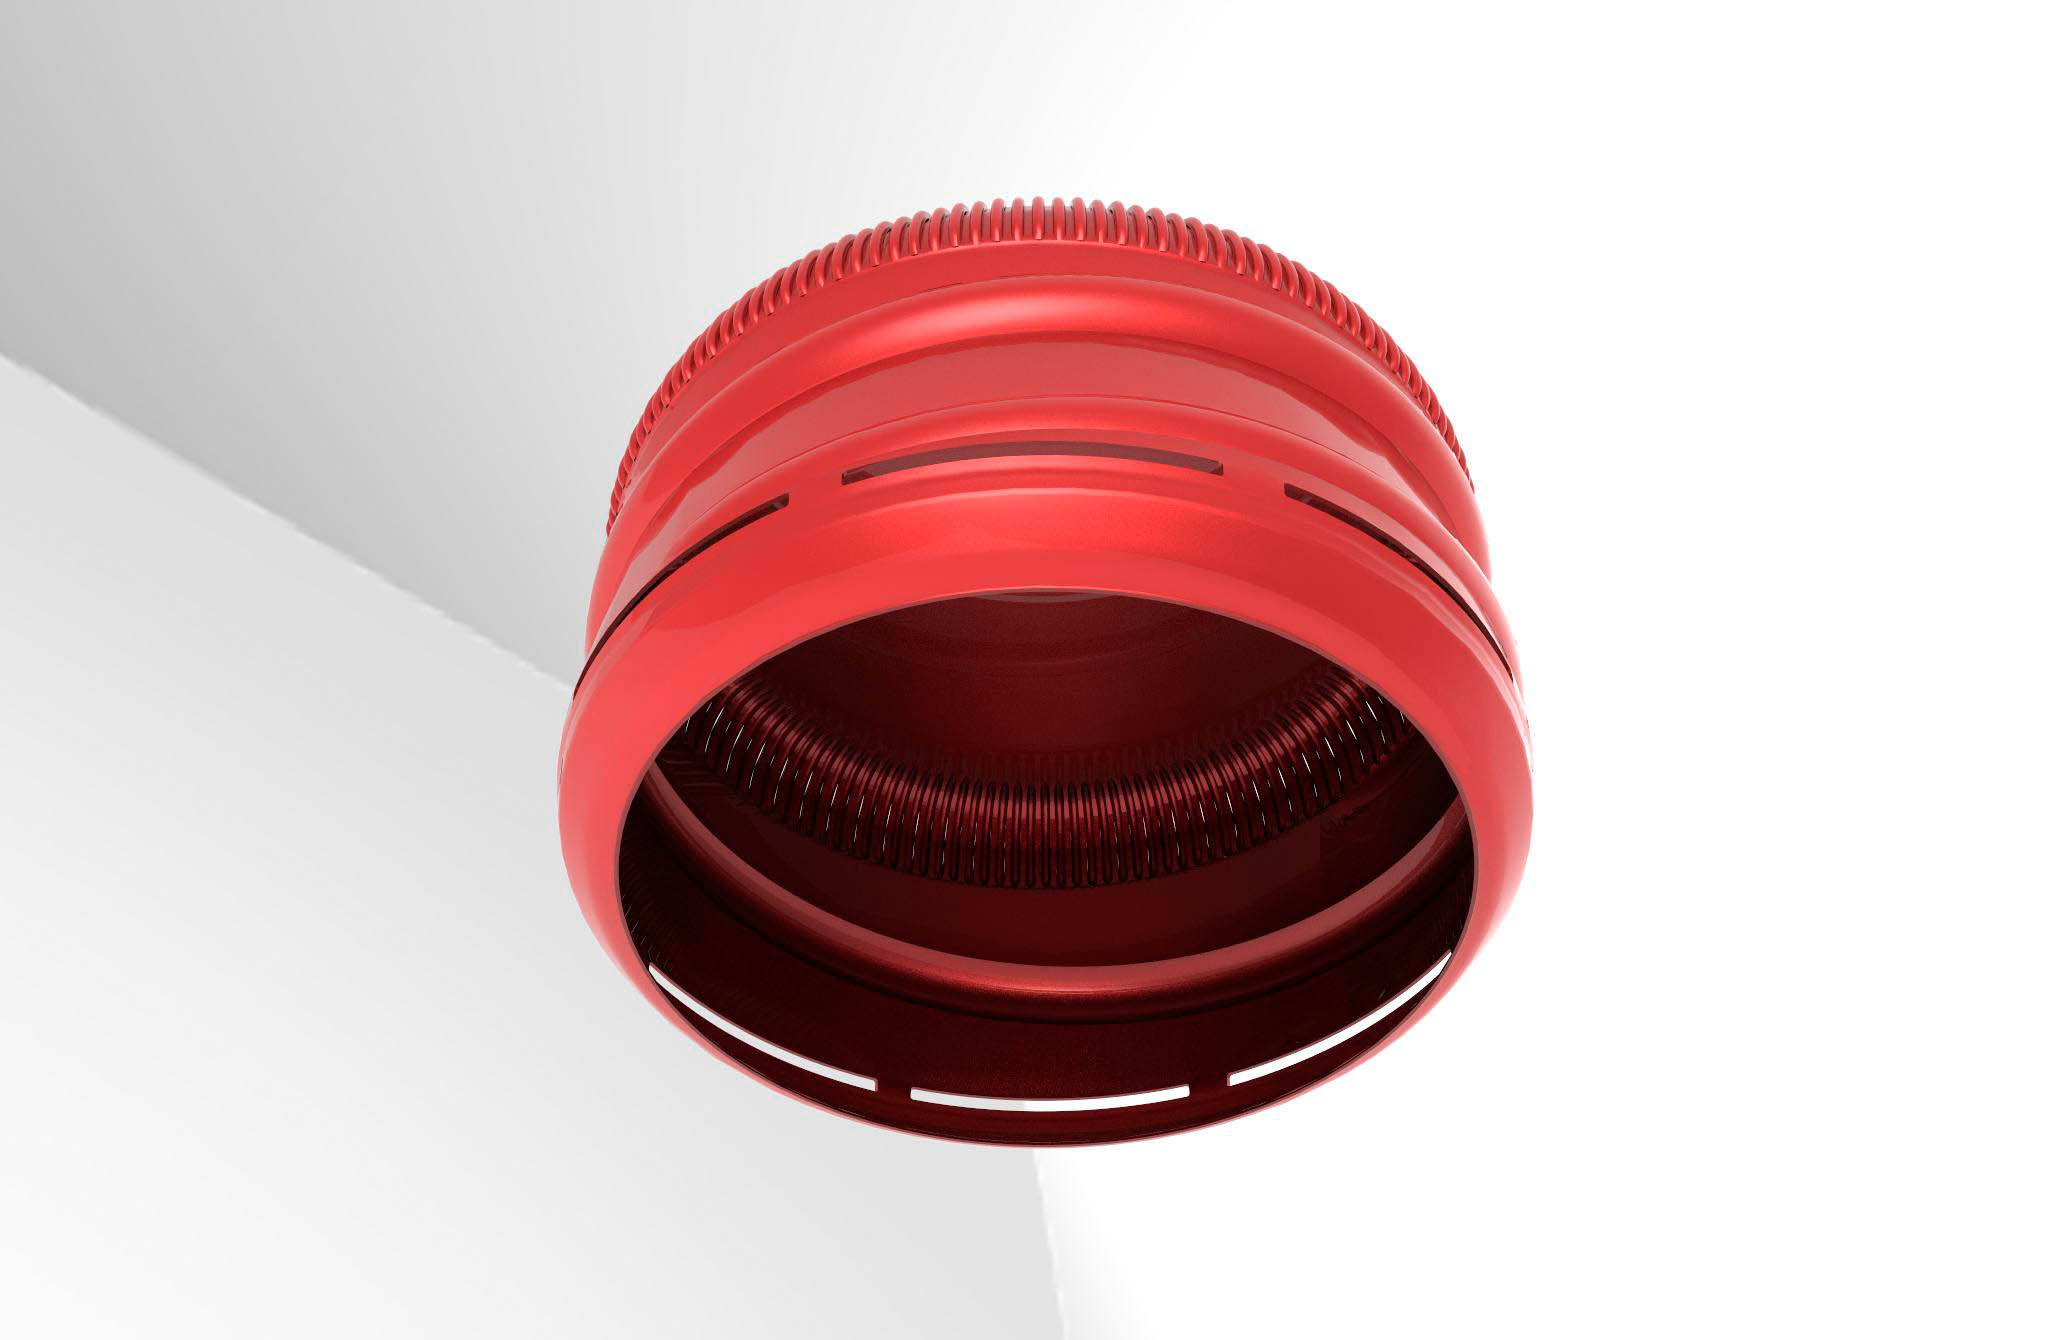 bottle screw cap 3d model 3ds max fbx 3dm obj 269433